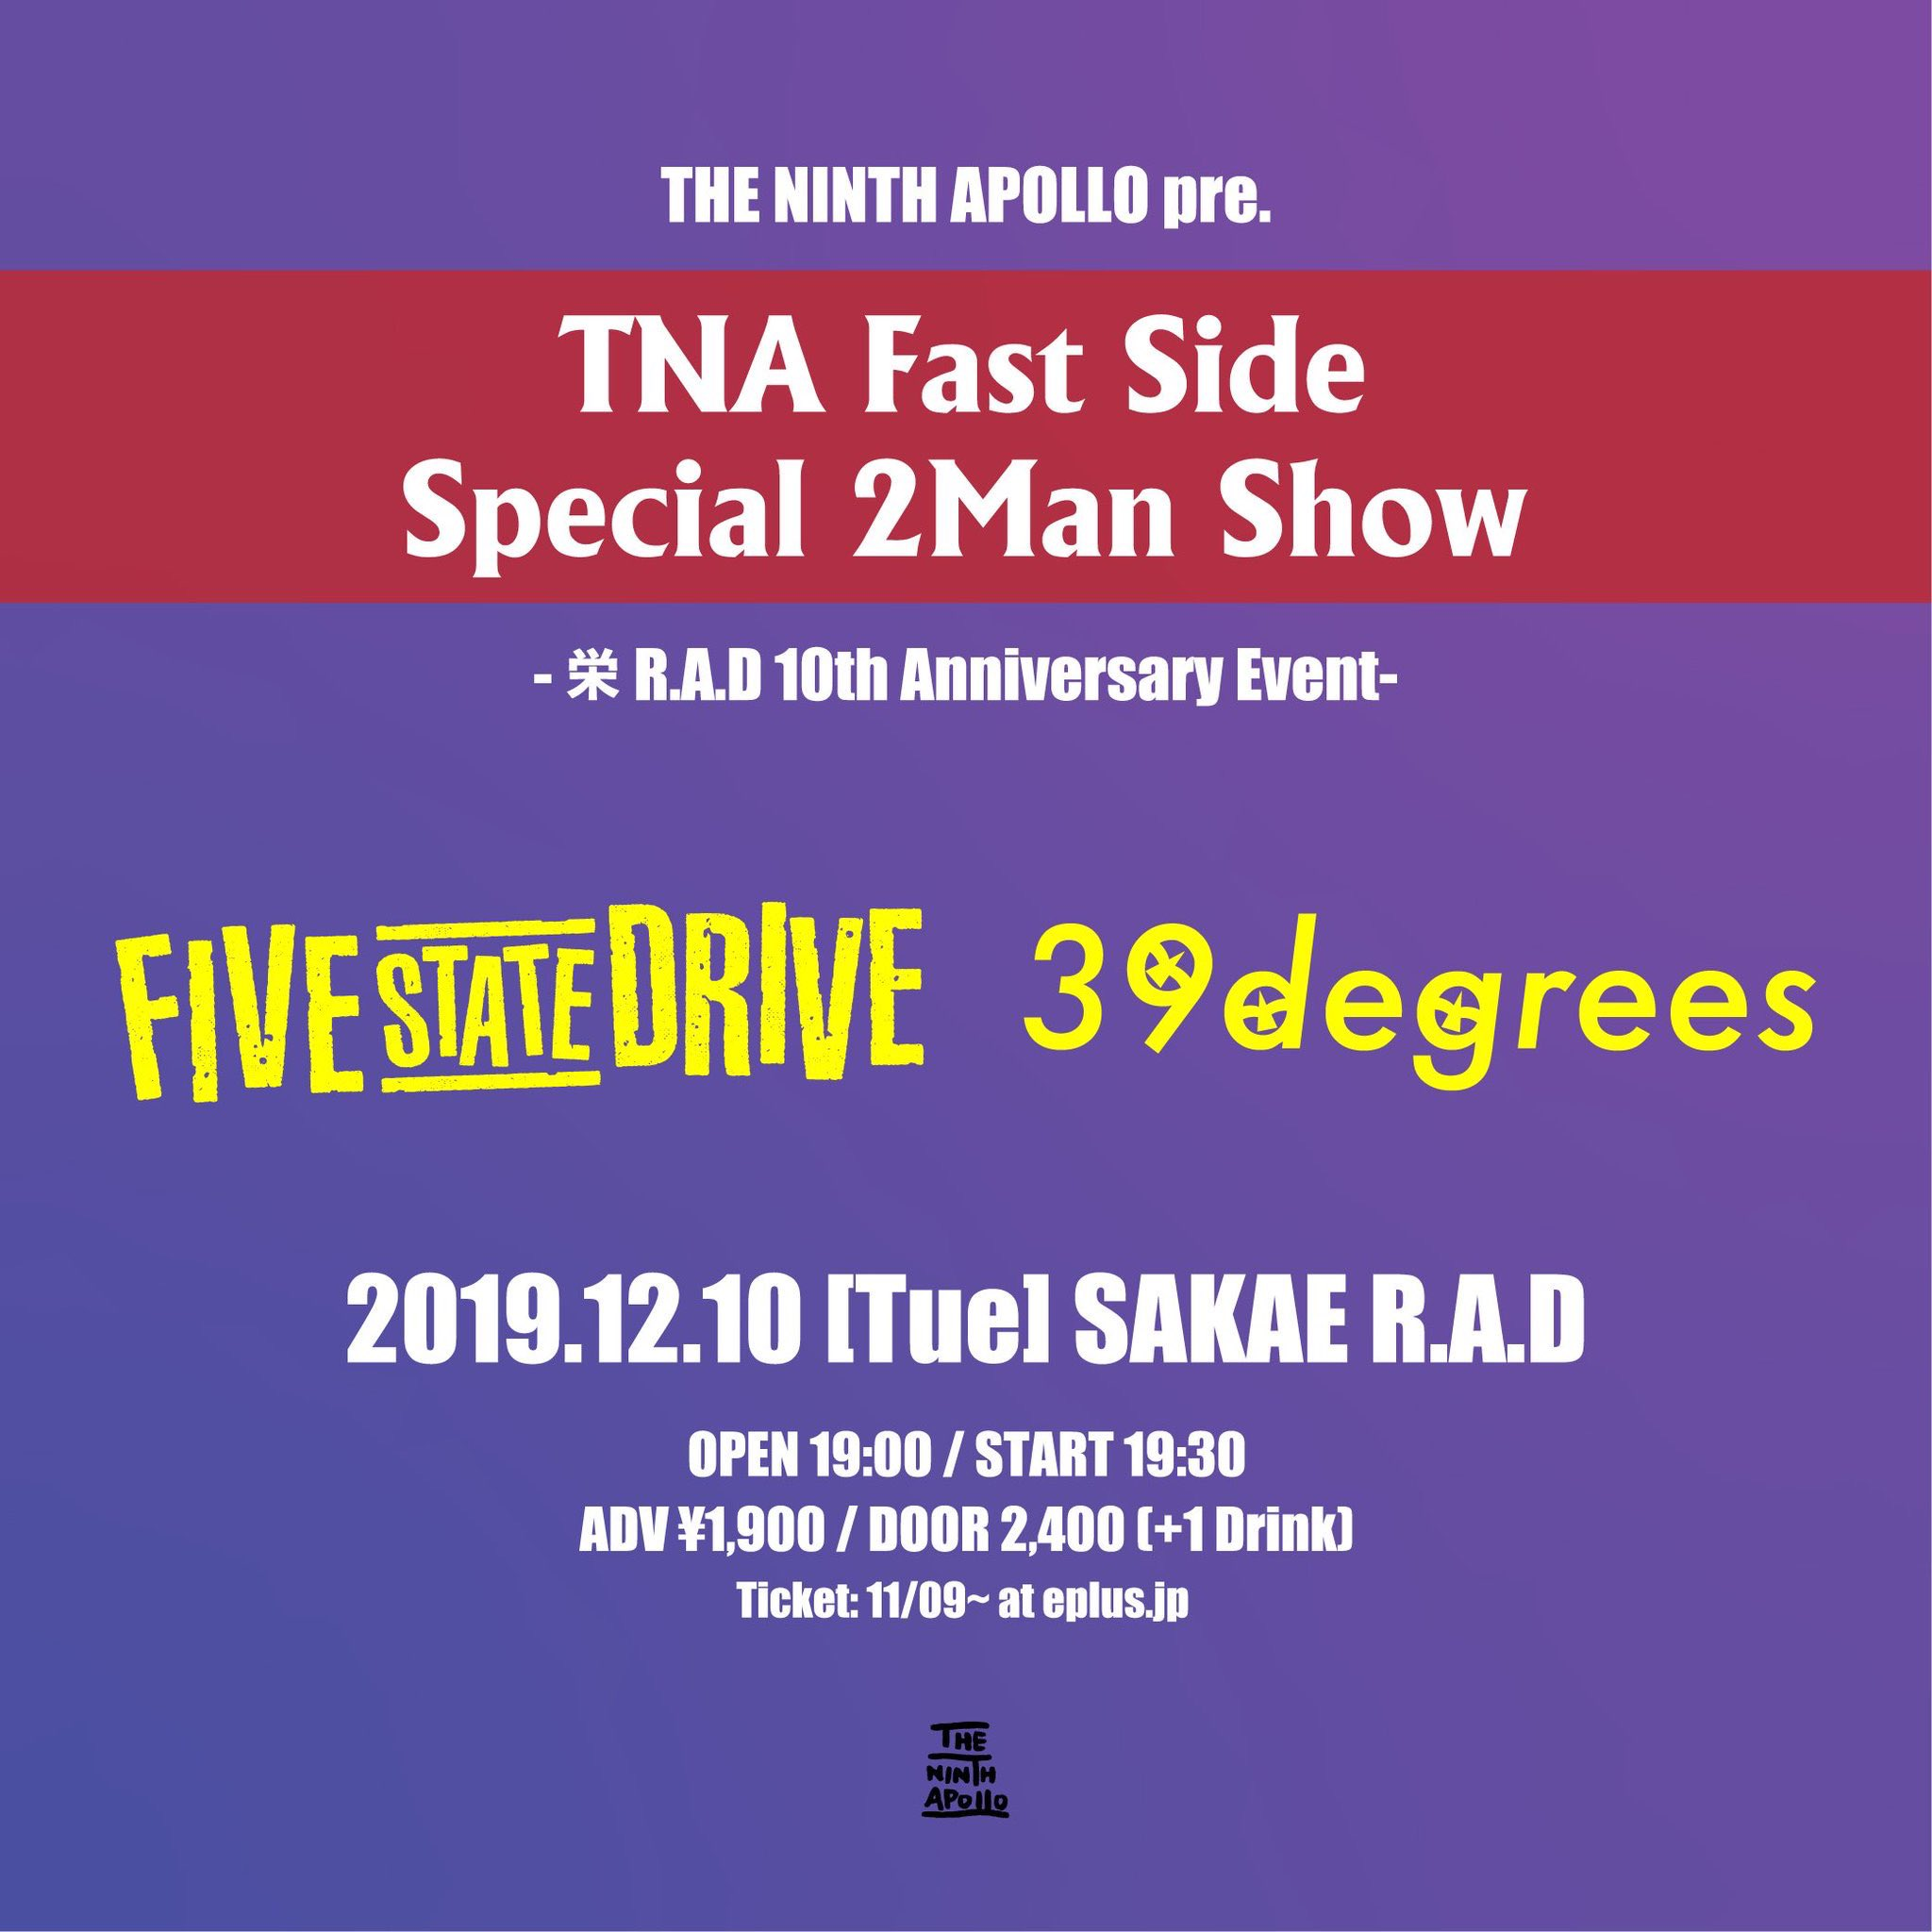 "THE NINTH APOLLO pre. ""TNA Fast Side Special 2Man Show"" -栄R.A.D 10th Anniversary Event-"